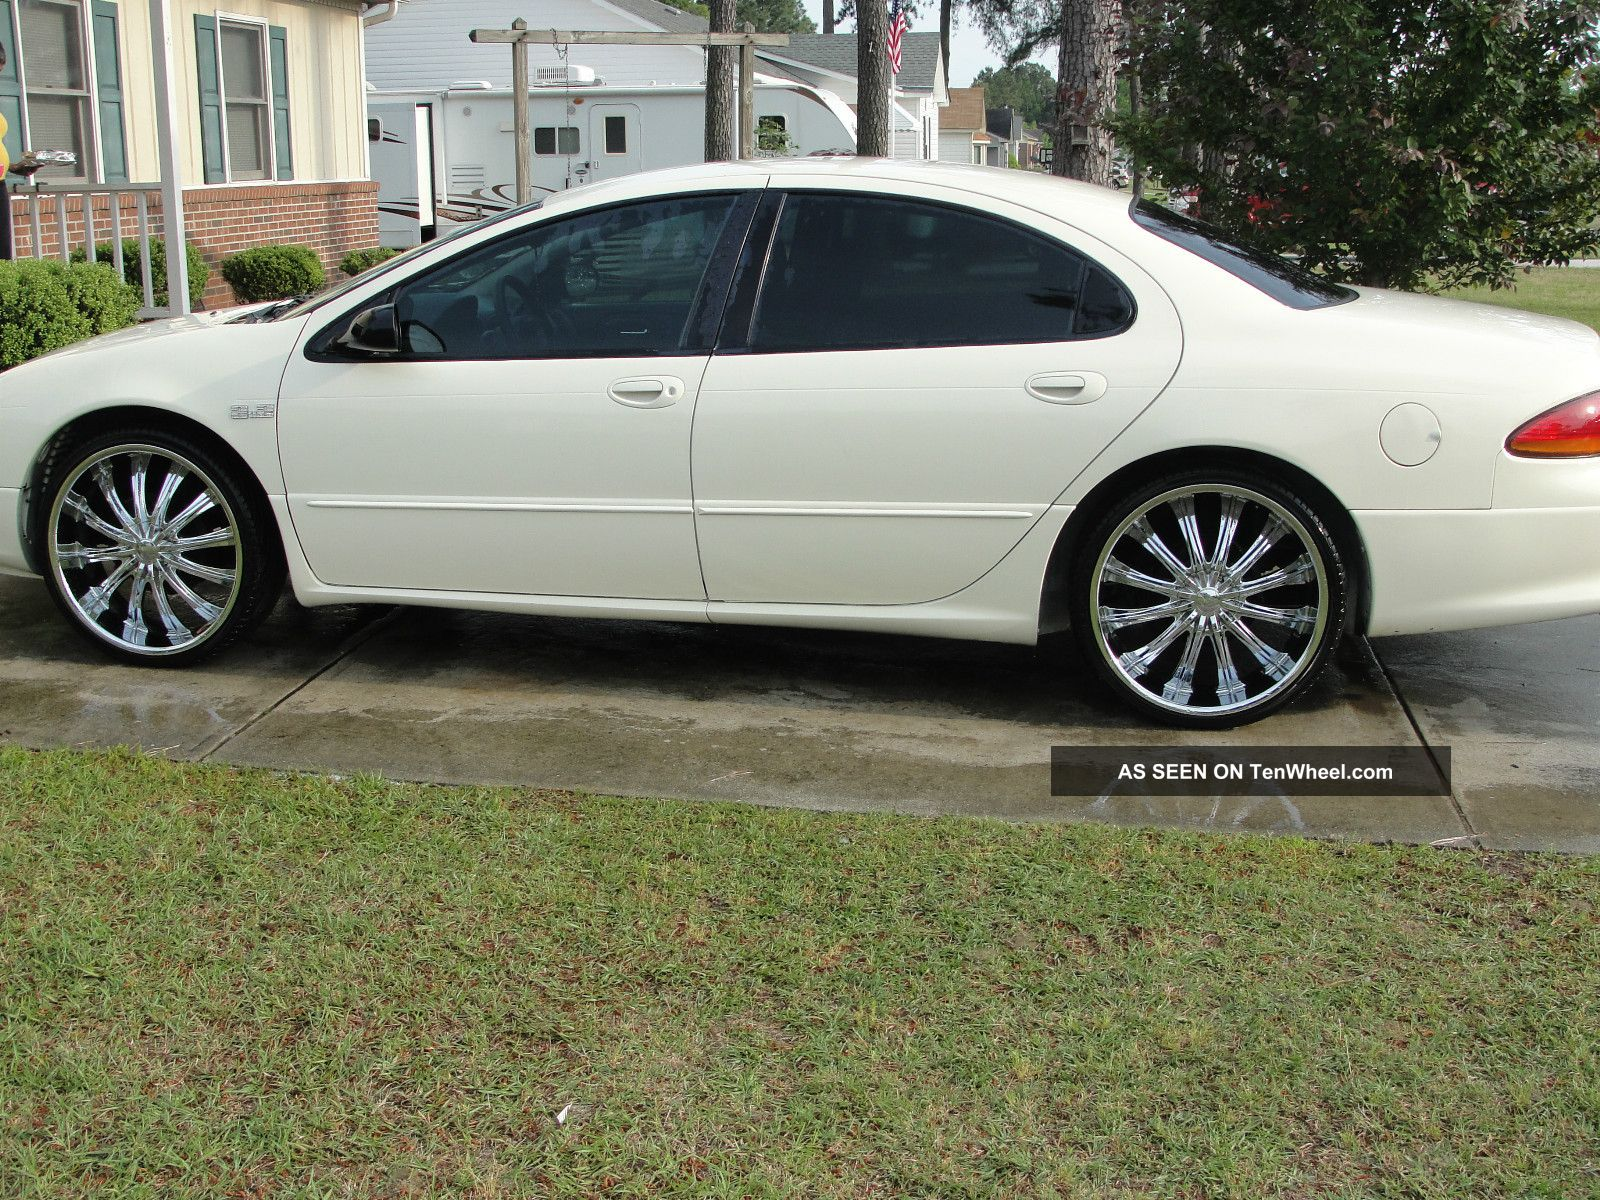 2002 chrysler concorde lx sedan 4 door 2 7l concorde photo 1. Cars Review. Best American Auto & Cars Review